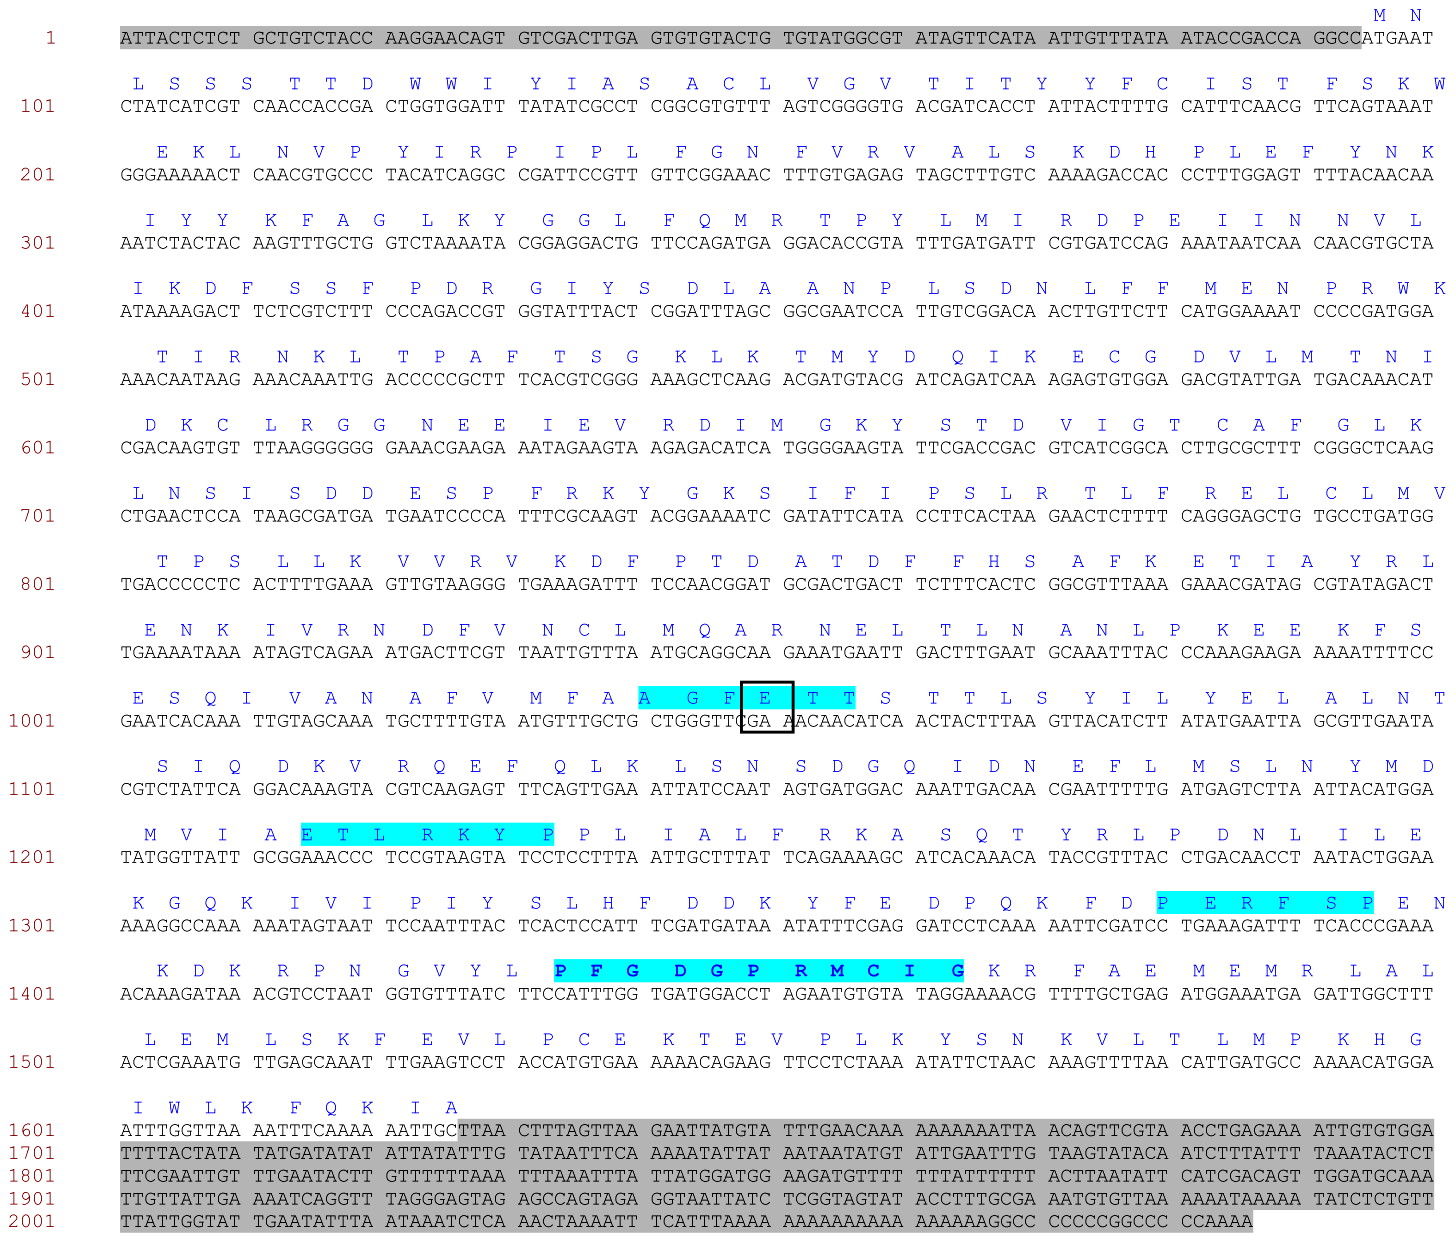 Complete mRNA sequence of <i>M. persicae CYP6CY3.</i>